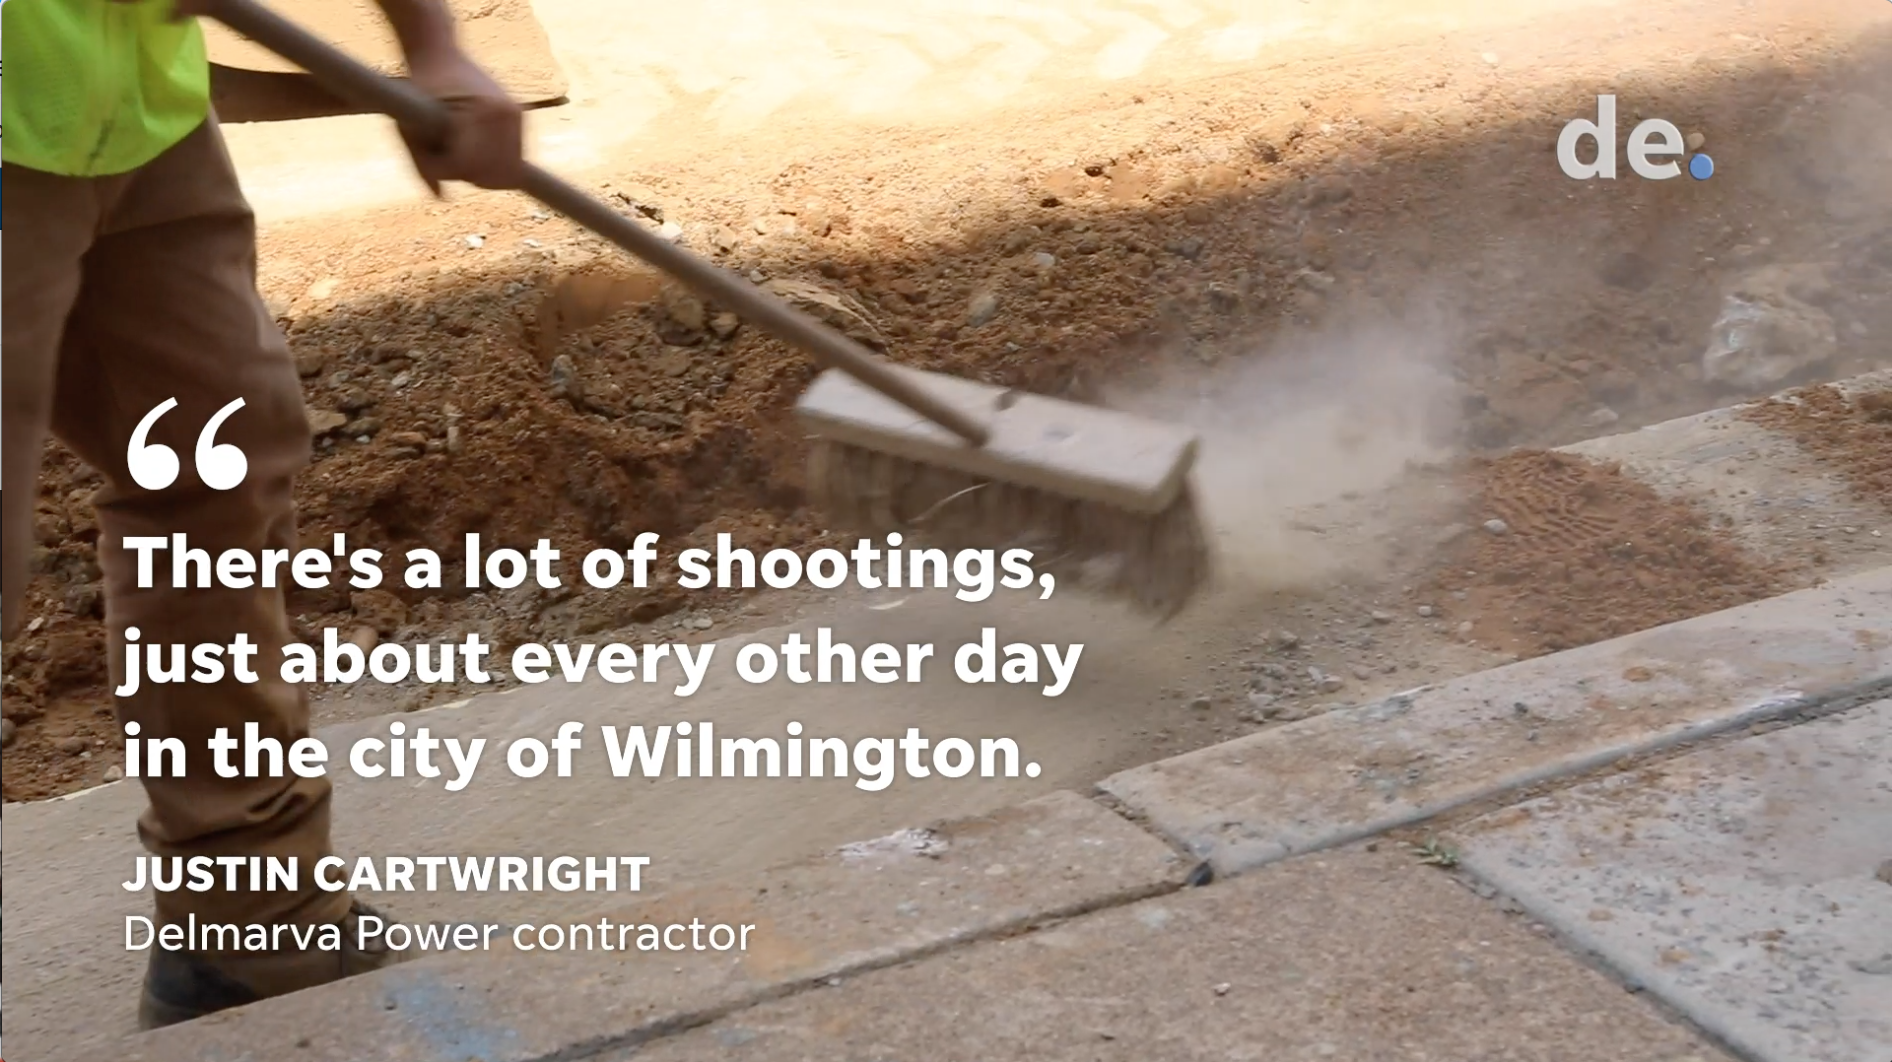 Delmarva Power contractors work nearby after shooting